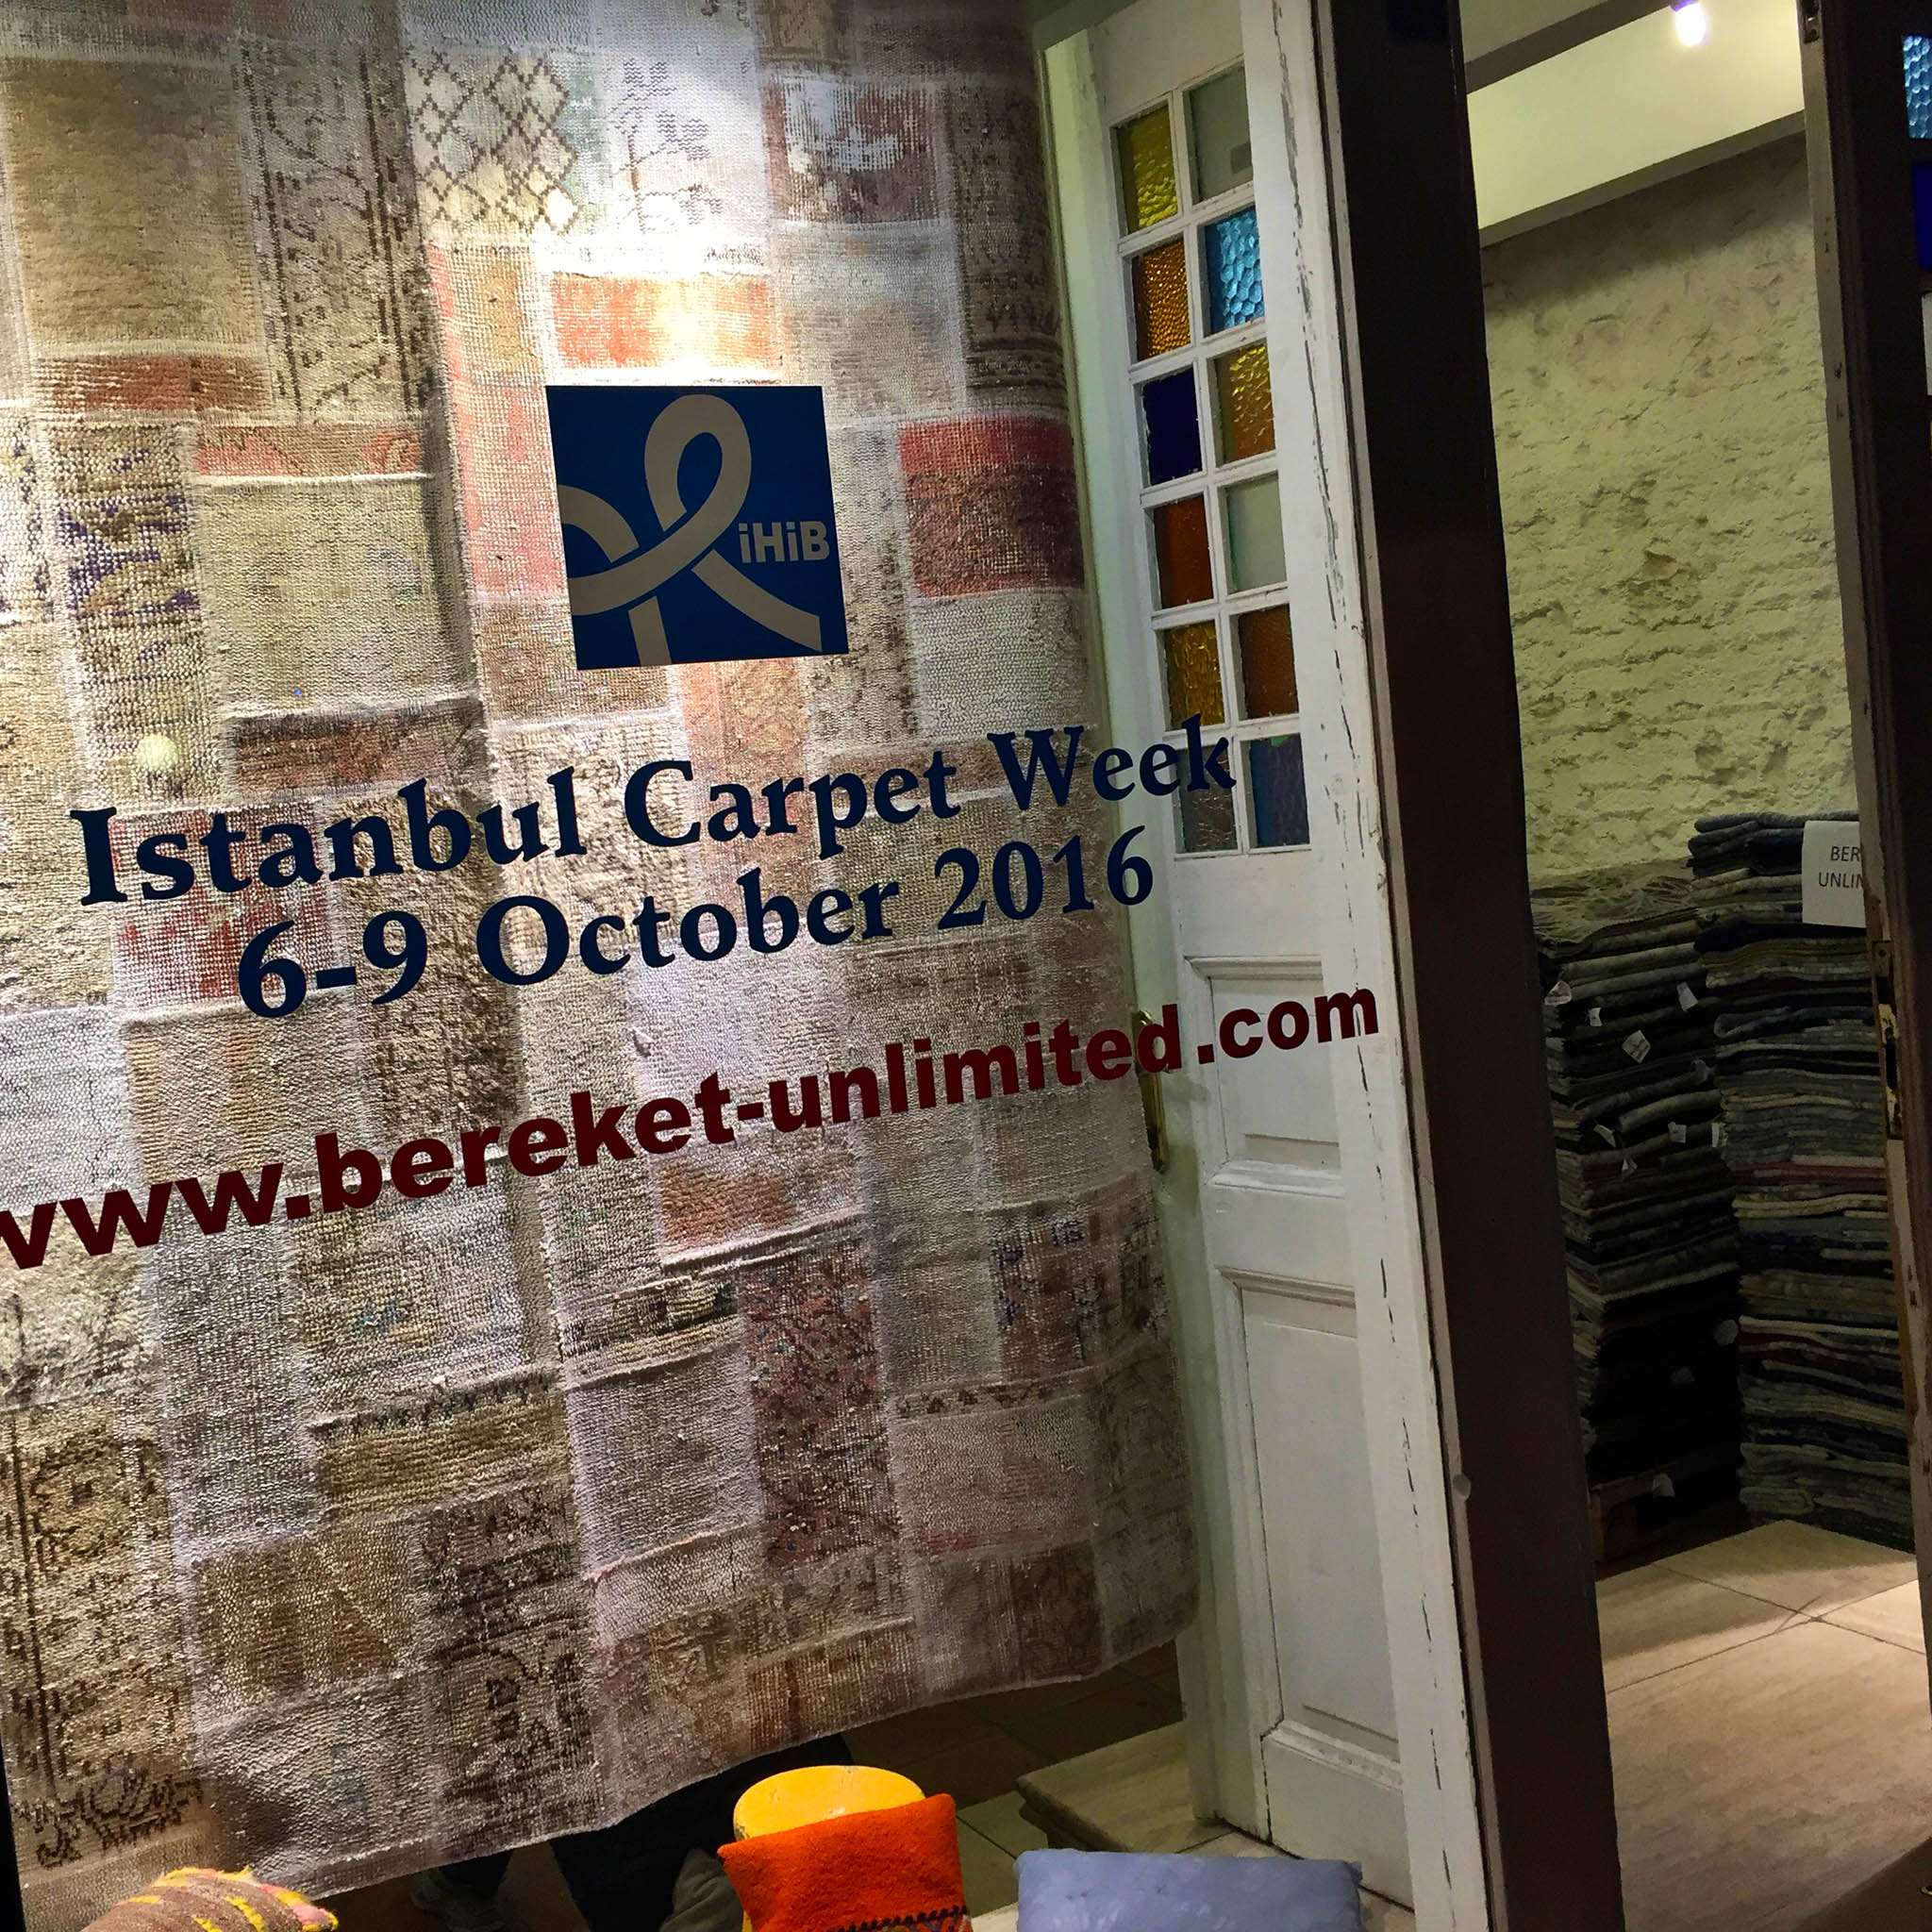 The window display of Bereket Unlimited in Istanbul, Turkey as it appeared in the Autumn of 2016 during Istanbul Carpet Week. | Image by The Ruggist.